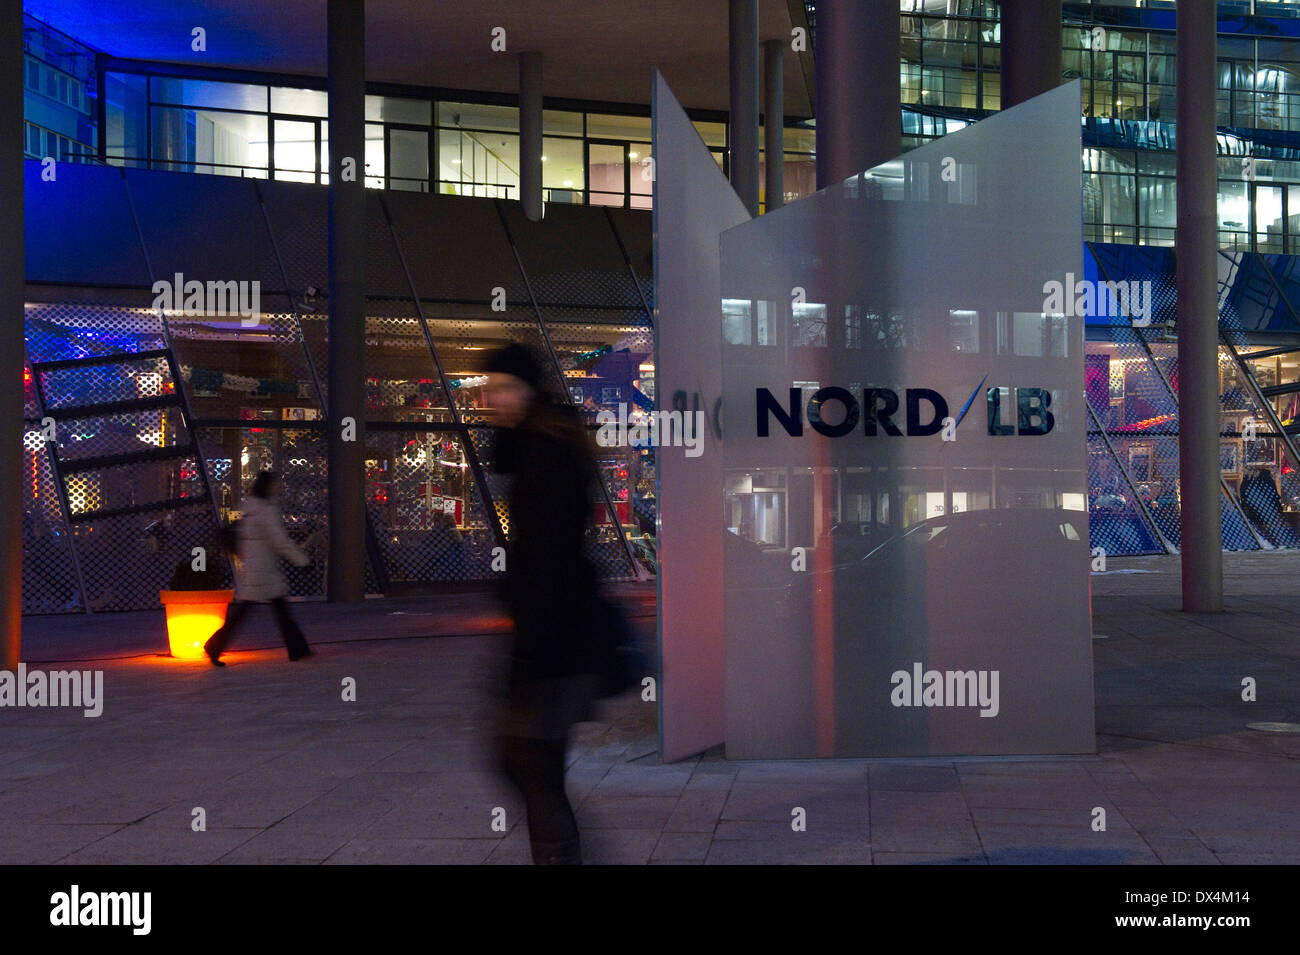 NORD LB - Stock Image